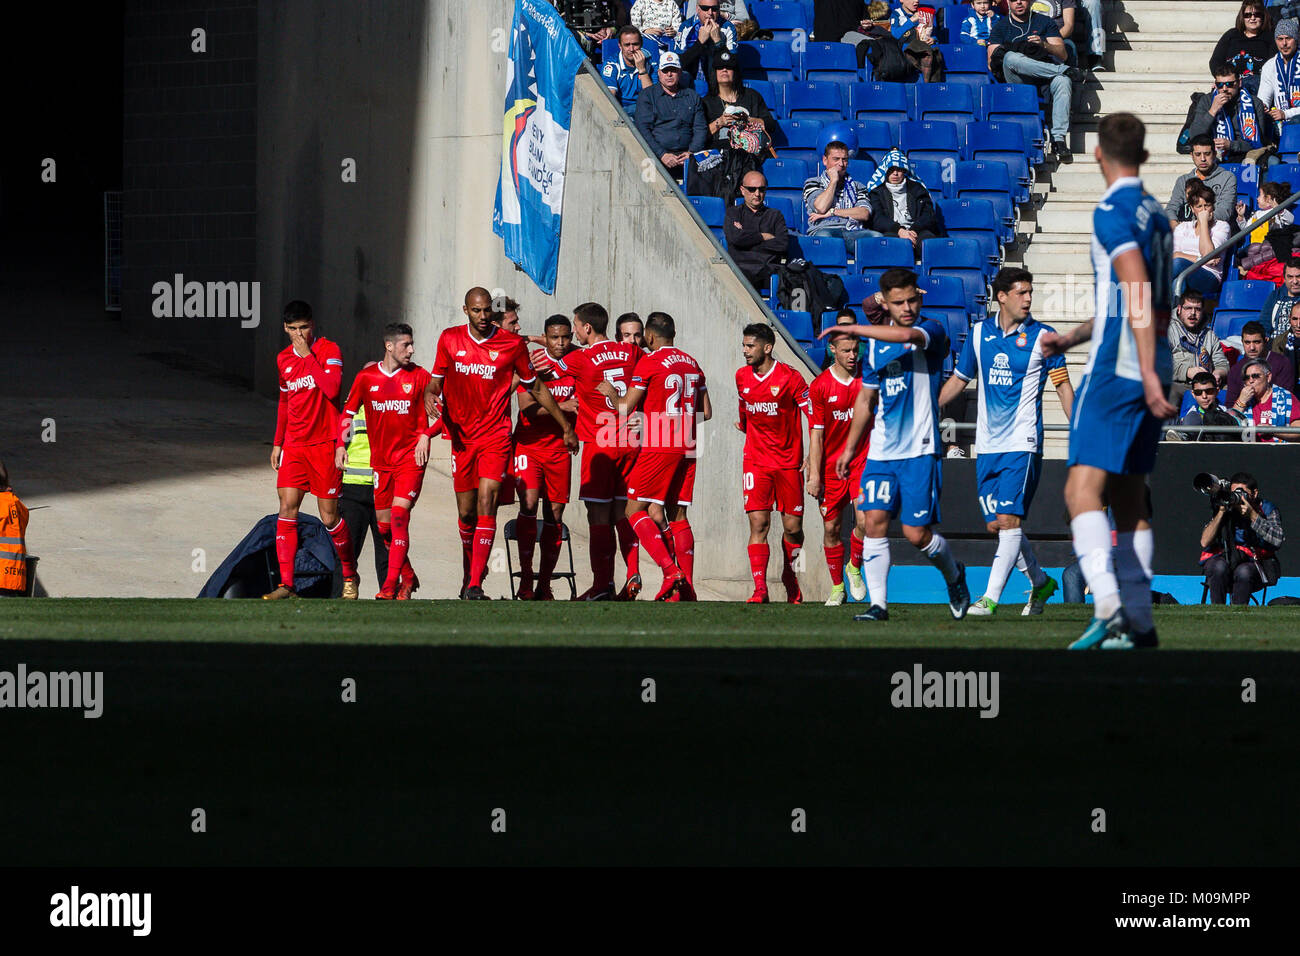 Sevilla CF players celebrates the goal during the match between RCD Espanyol and Sevilla CF, for the round 20 of - Stock Image